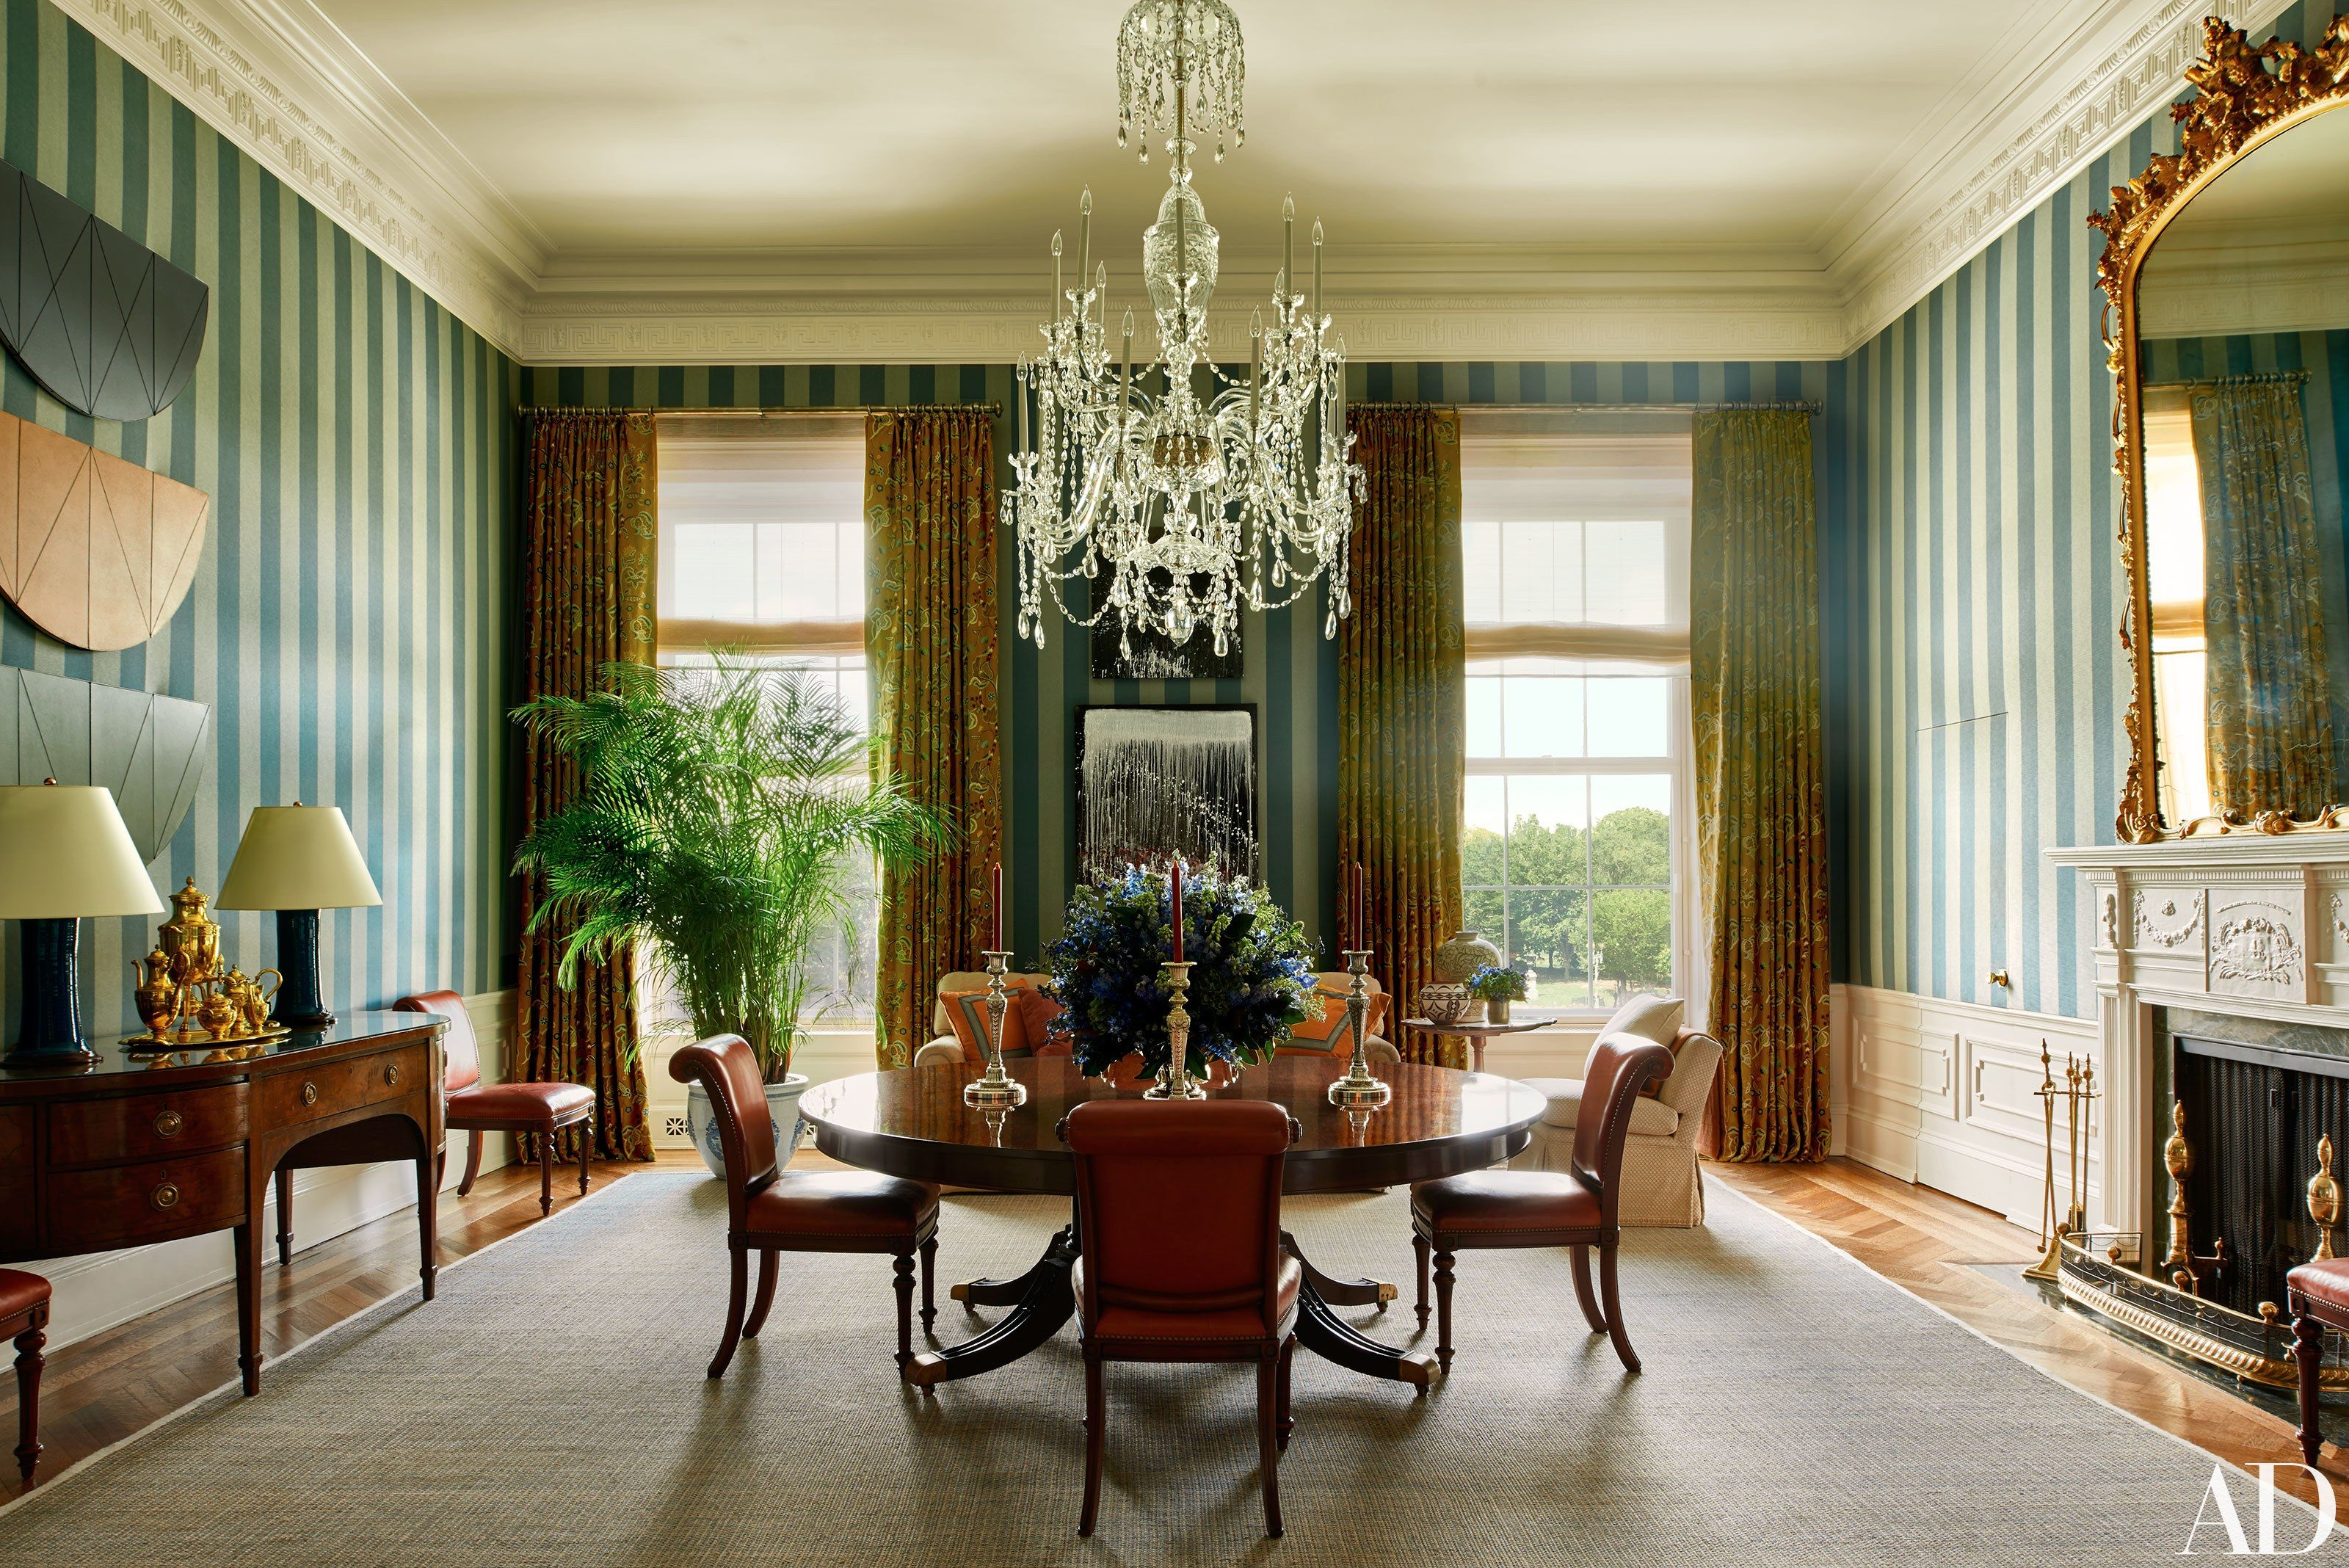 The Obama Family S Stylish Home Inside The White House Inside